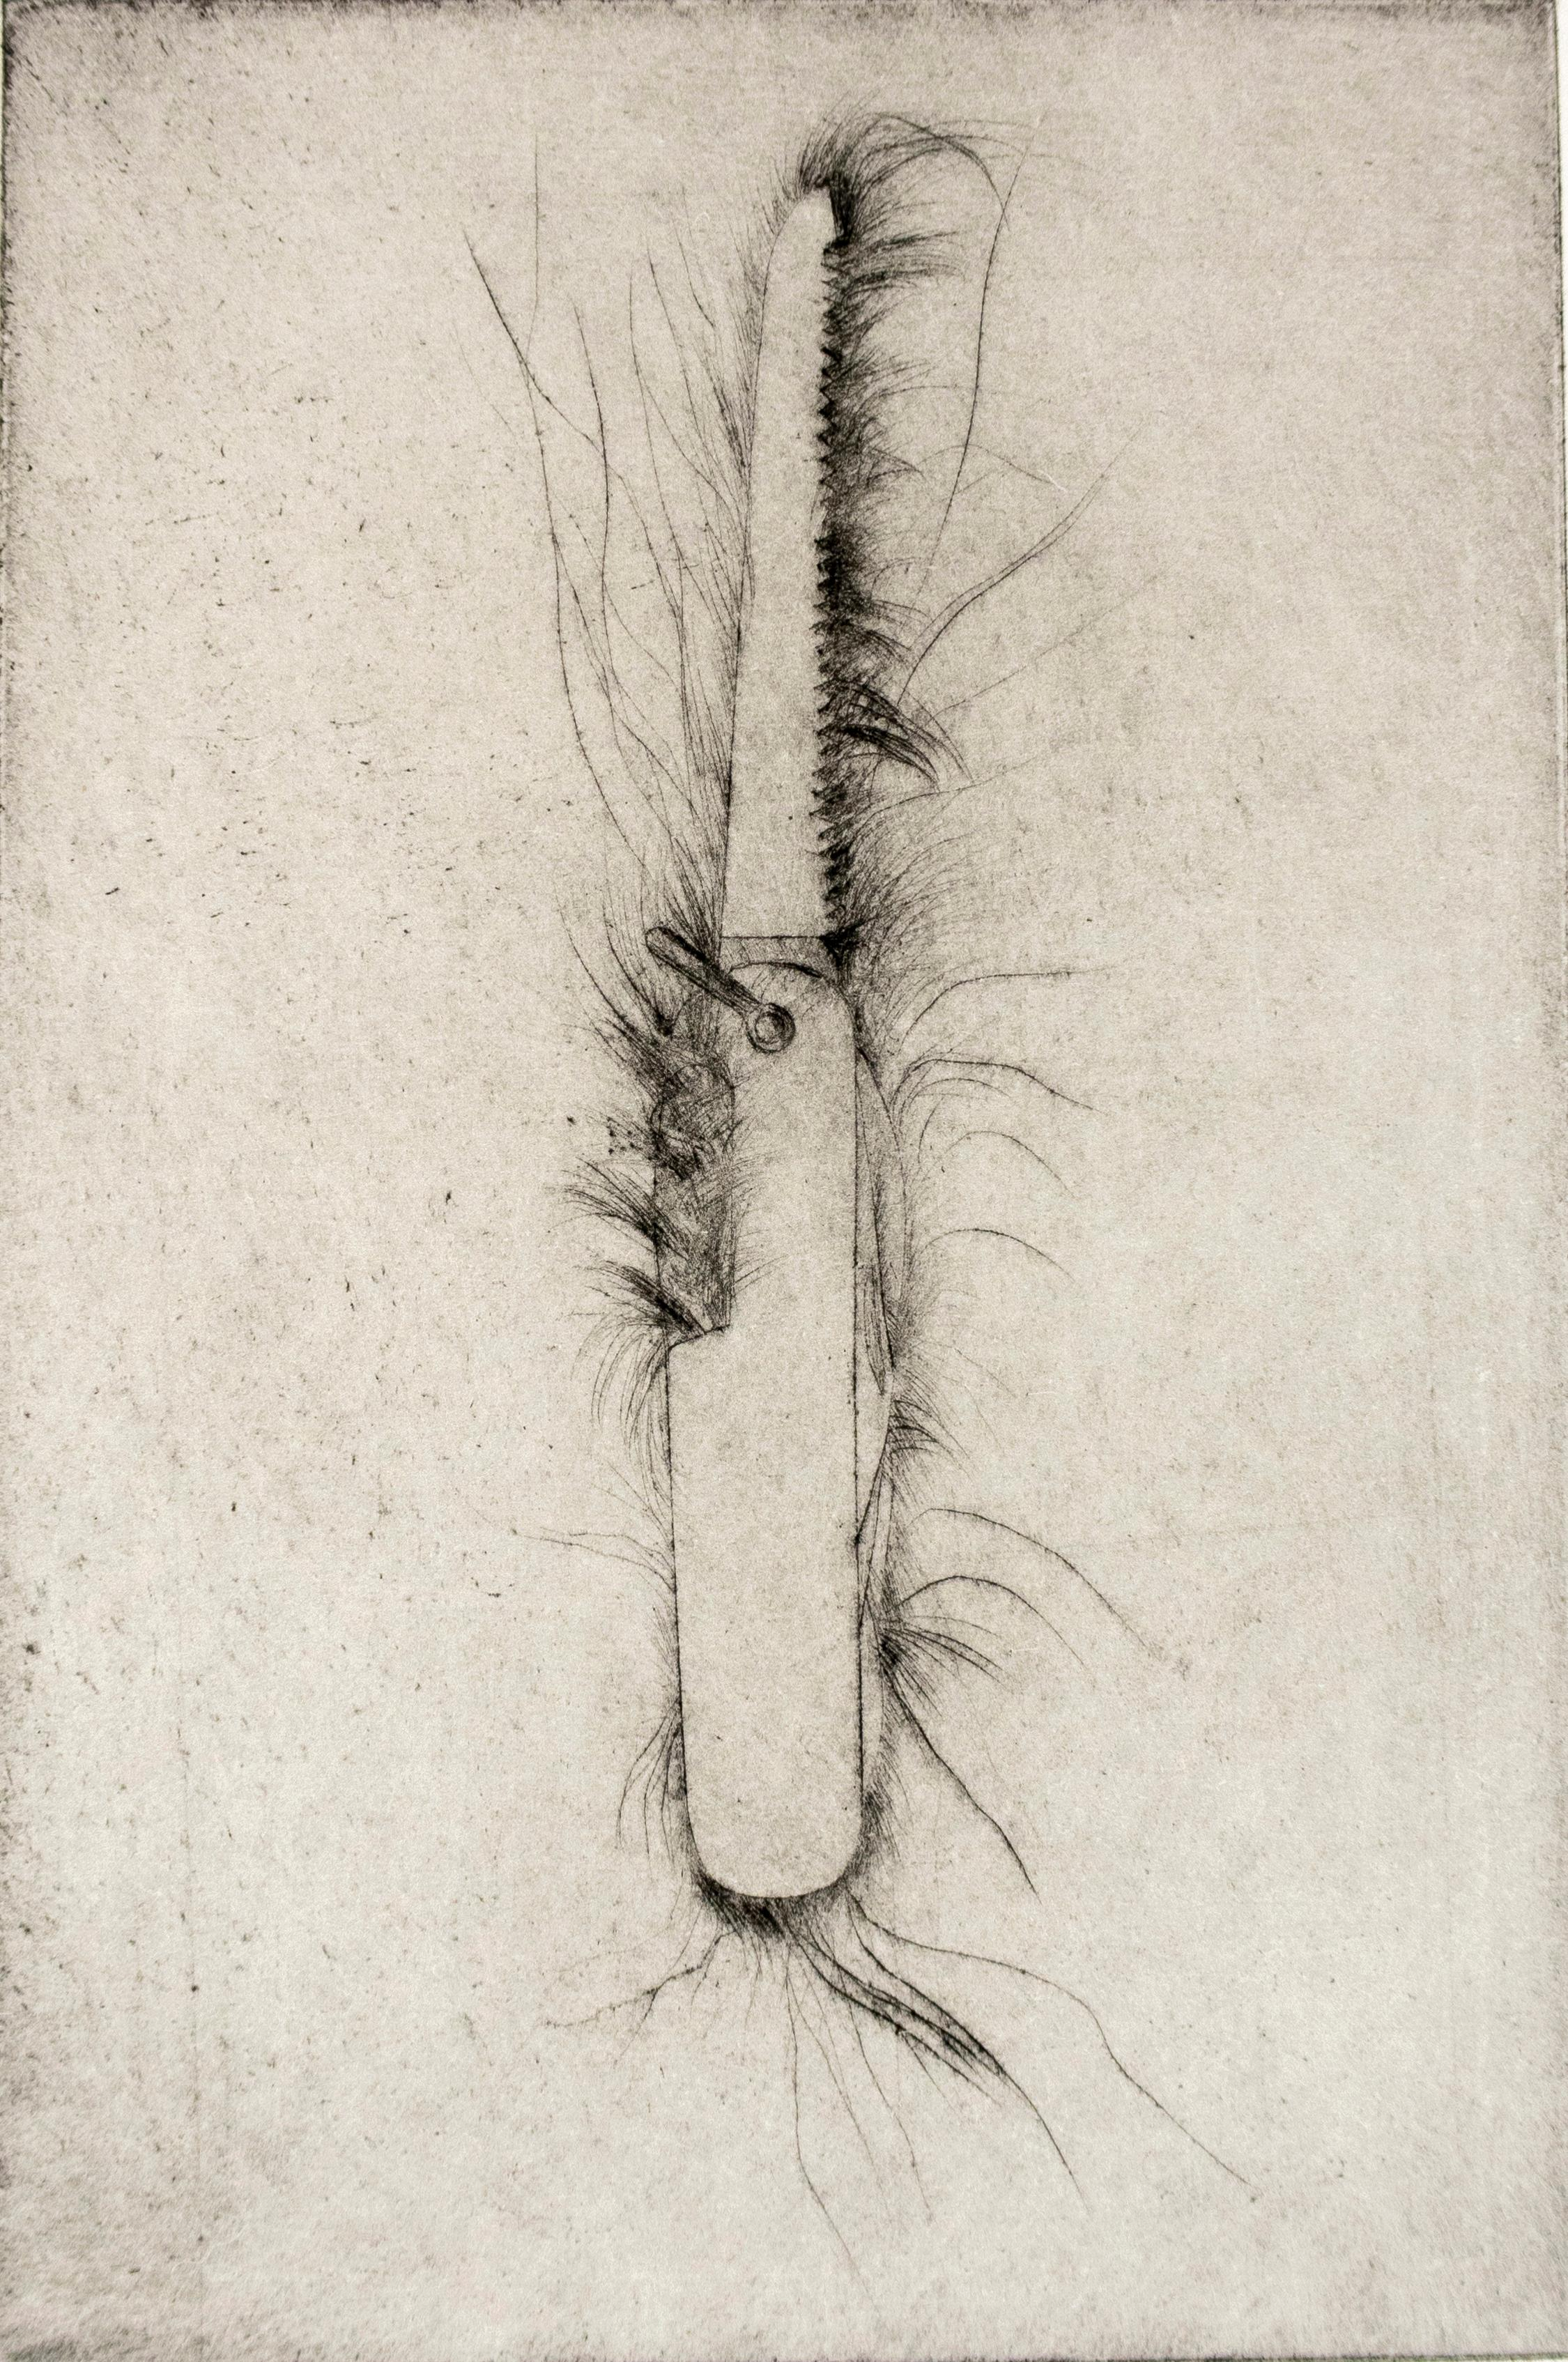 Drypoint: Hand saw by Jim Dine, black and white tool still life sketch